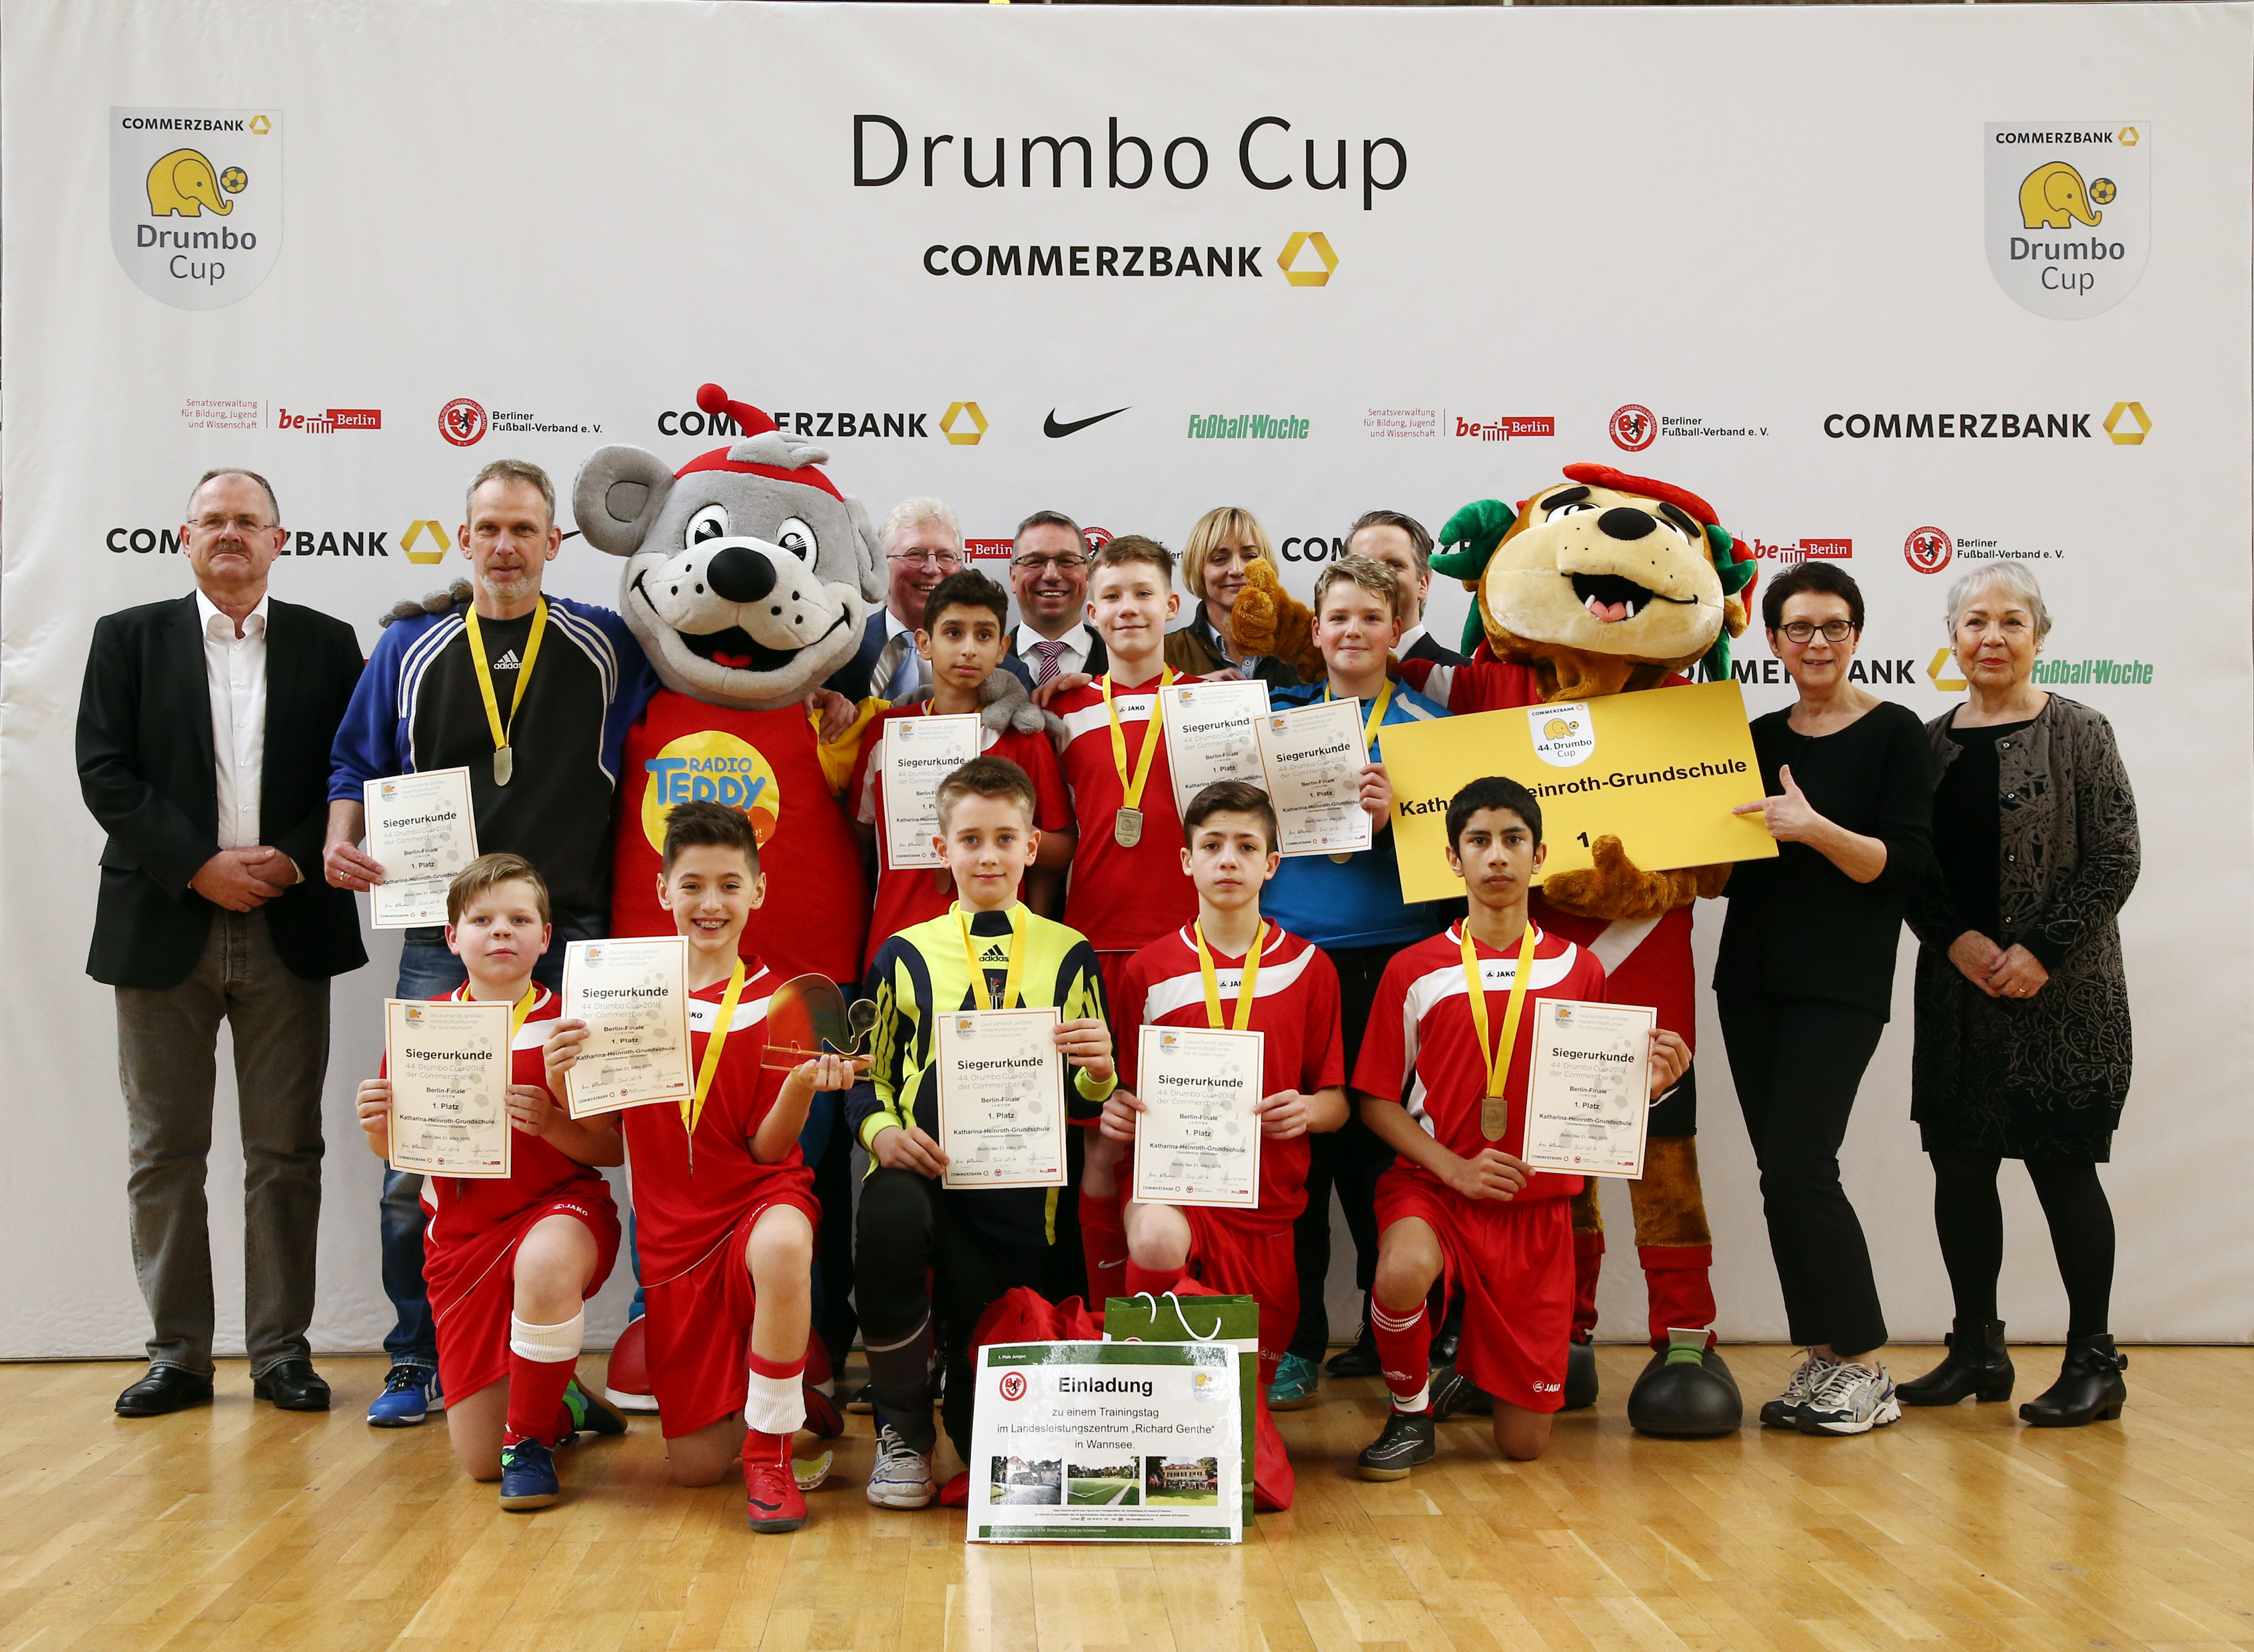 44. Commerzbank Drumbo Cup: So sehen Sieger aus!